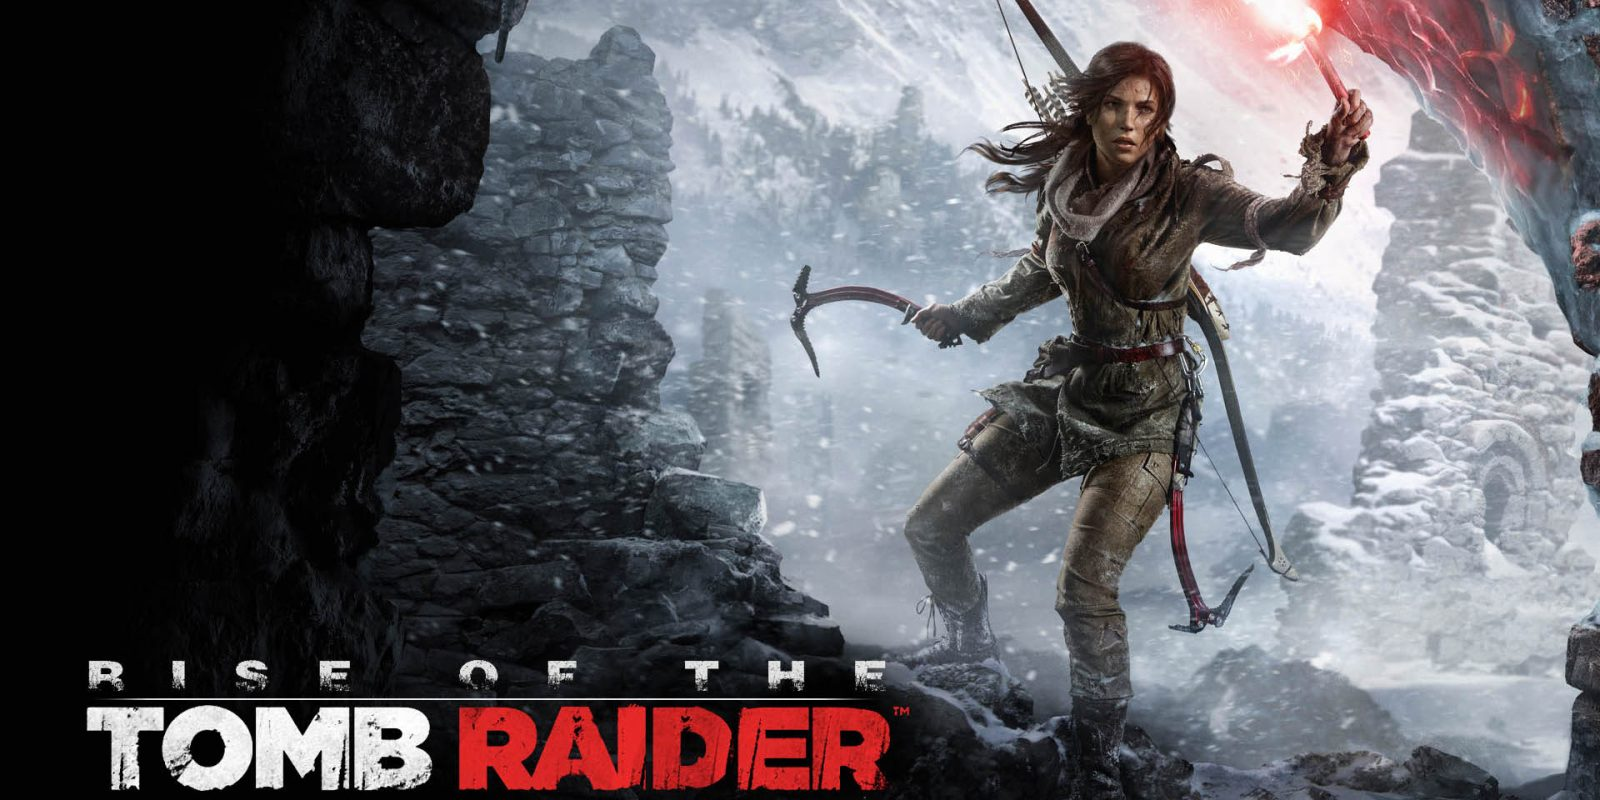 Today's Best Game Deals: Rise of the Tomb Raider $9, Darksiders Switch $15, more